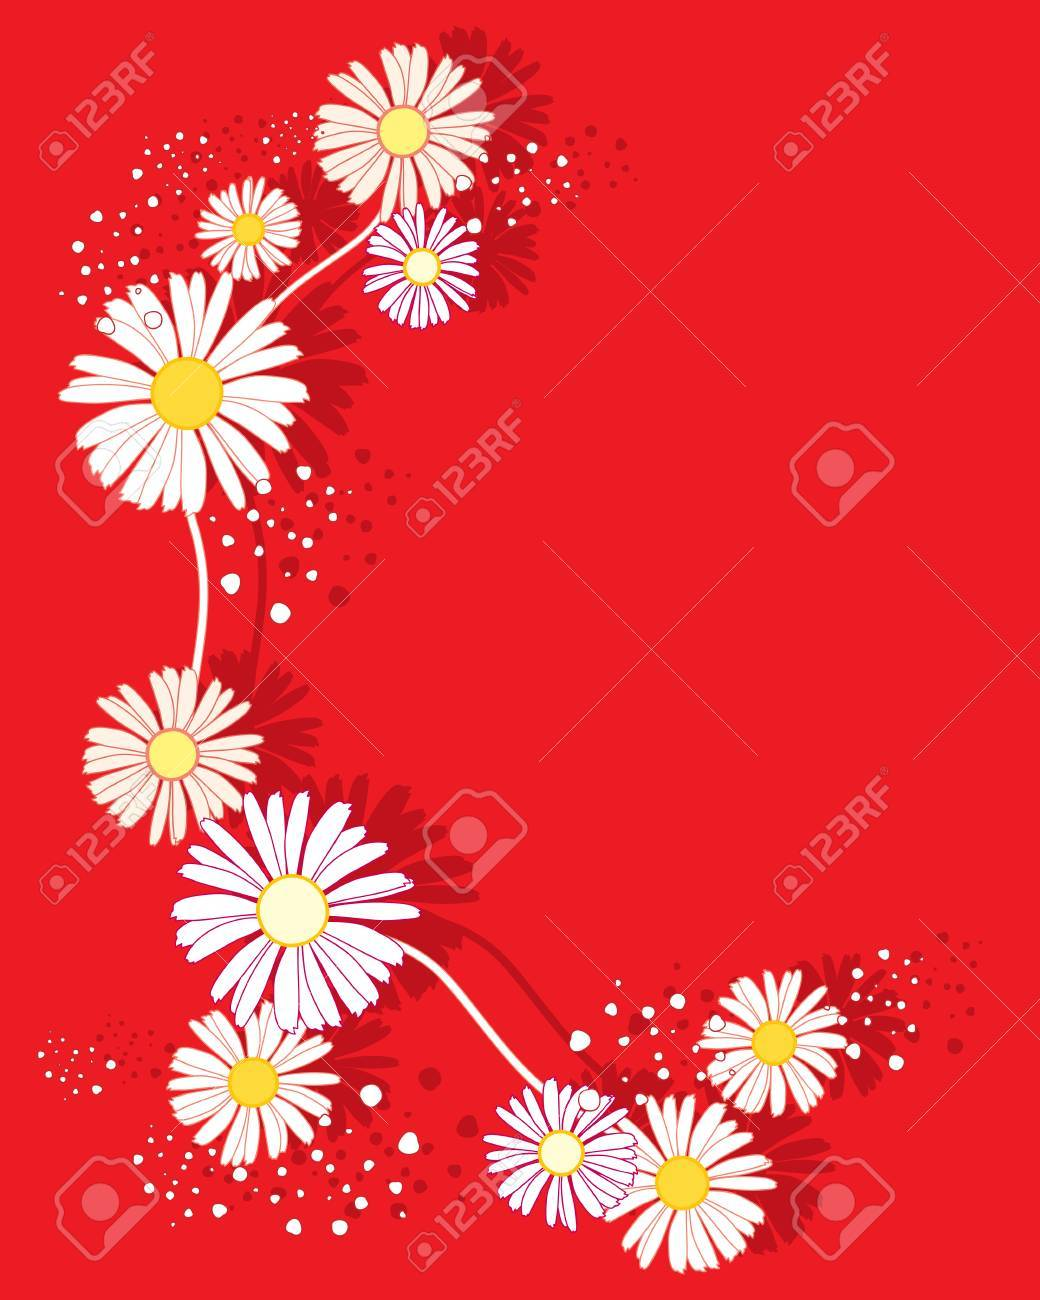 An Illustration Of A Summer Daisy Flower Design On A Bright Red